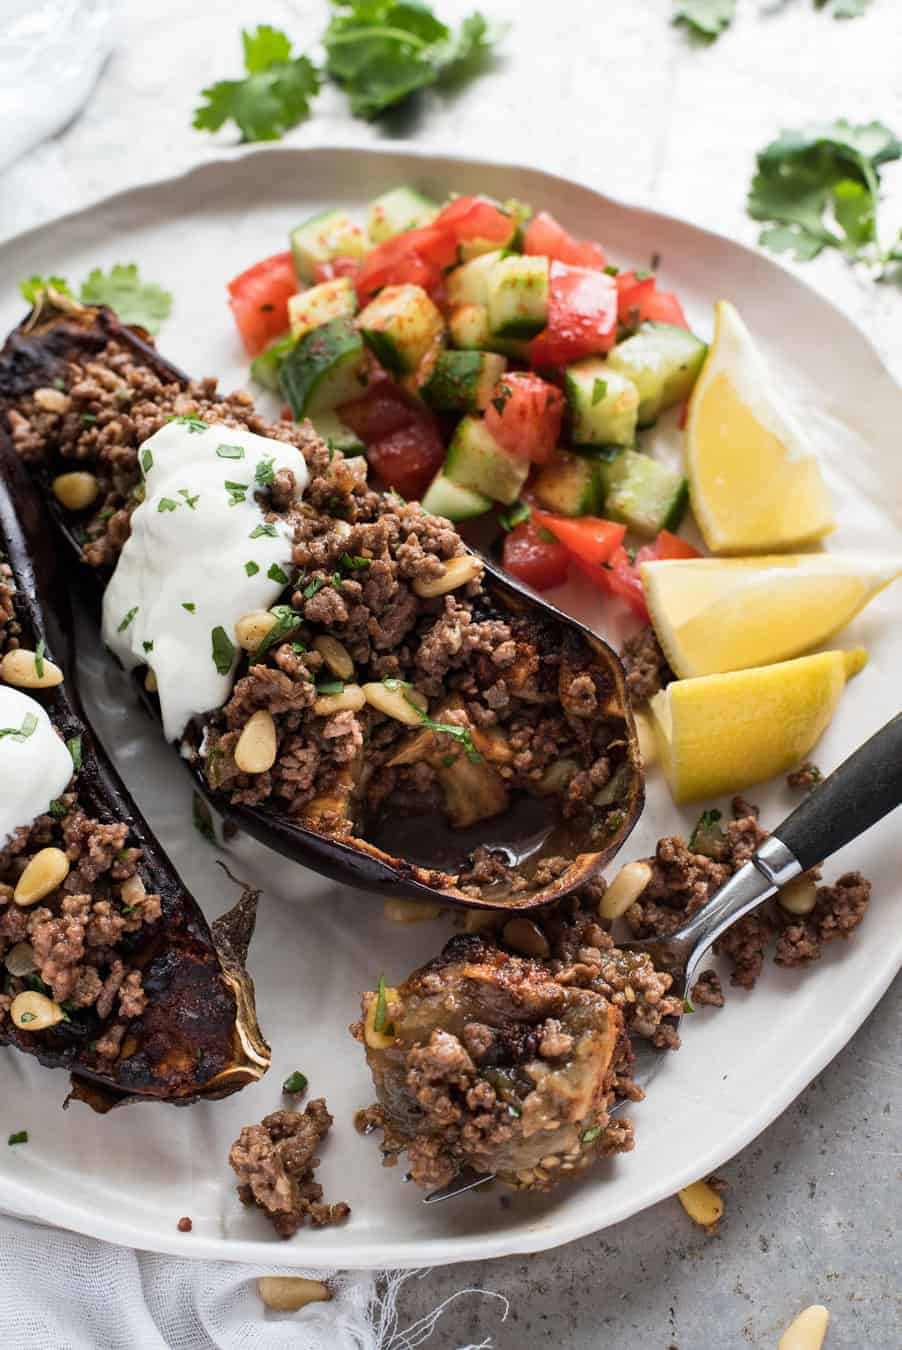 Healthy Eggplant Recipes  Moroccan Baked Eggplant with Beef